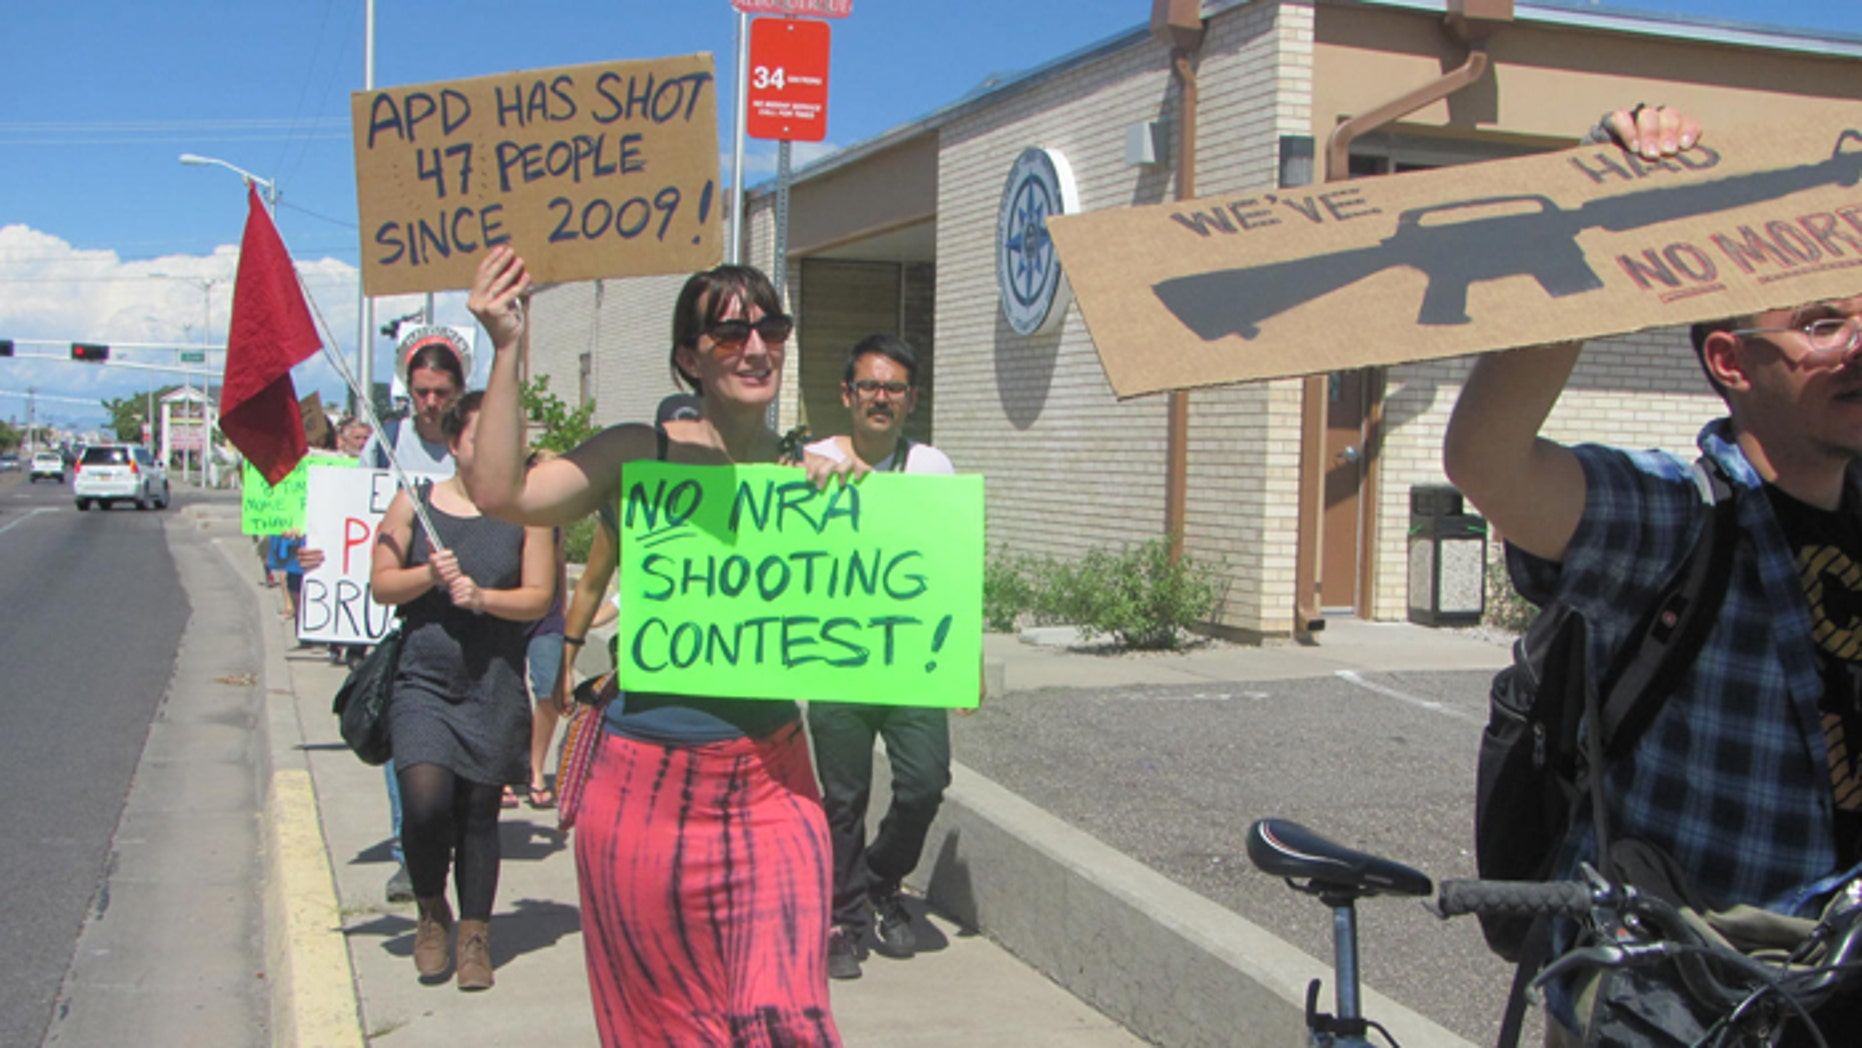 Demonstrators say the Albuquerque Police Department's shooting contest sends the wrong message. (FoxNews.com)